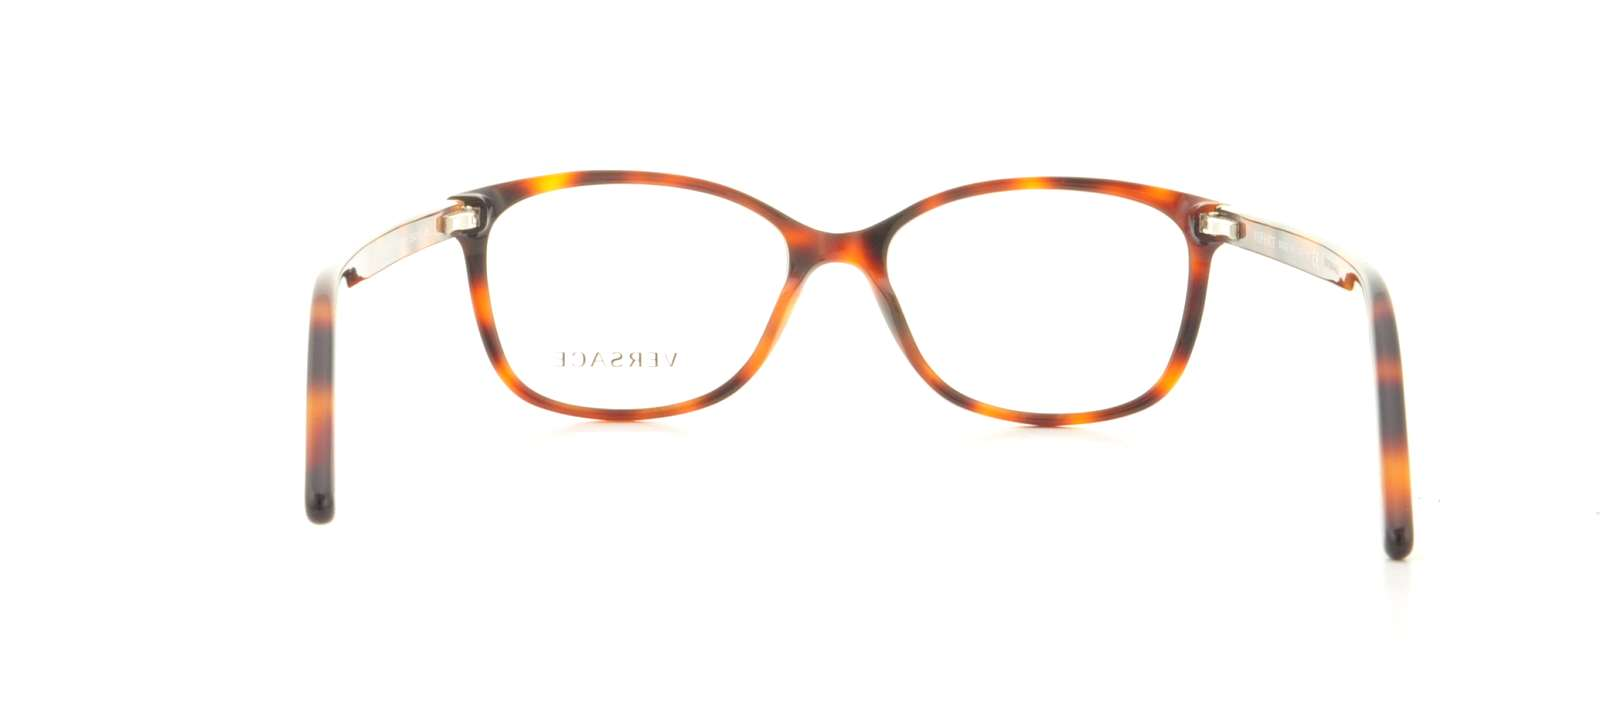 Versace VE3147M Eyeglasses-5061 Havana-51mm